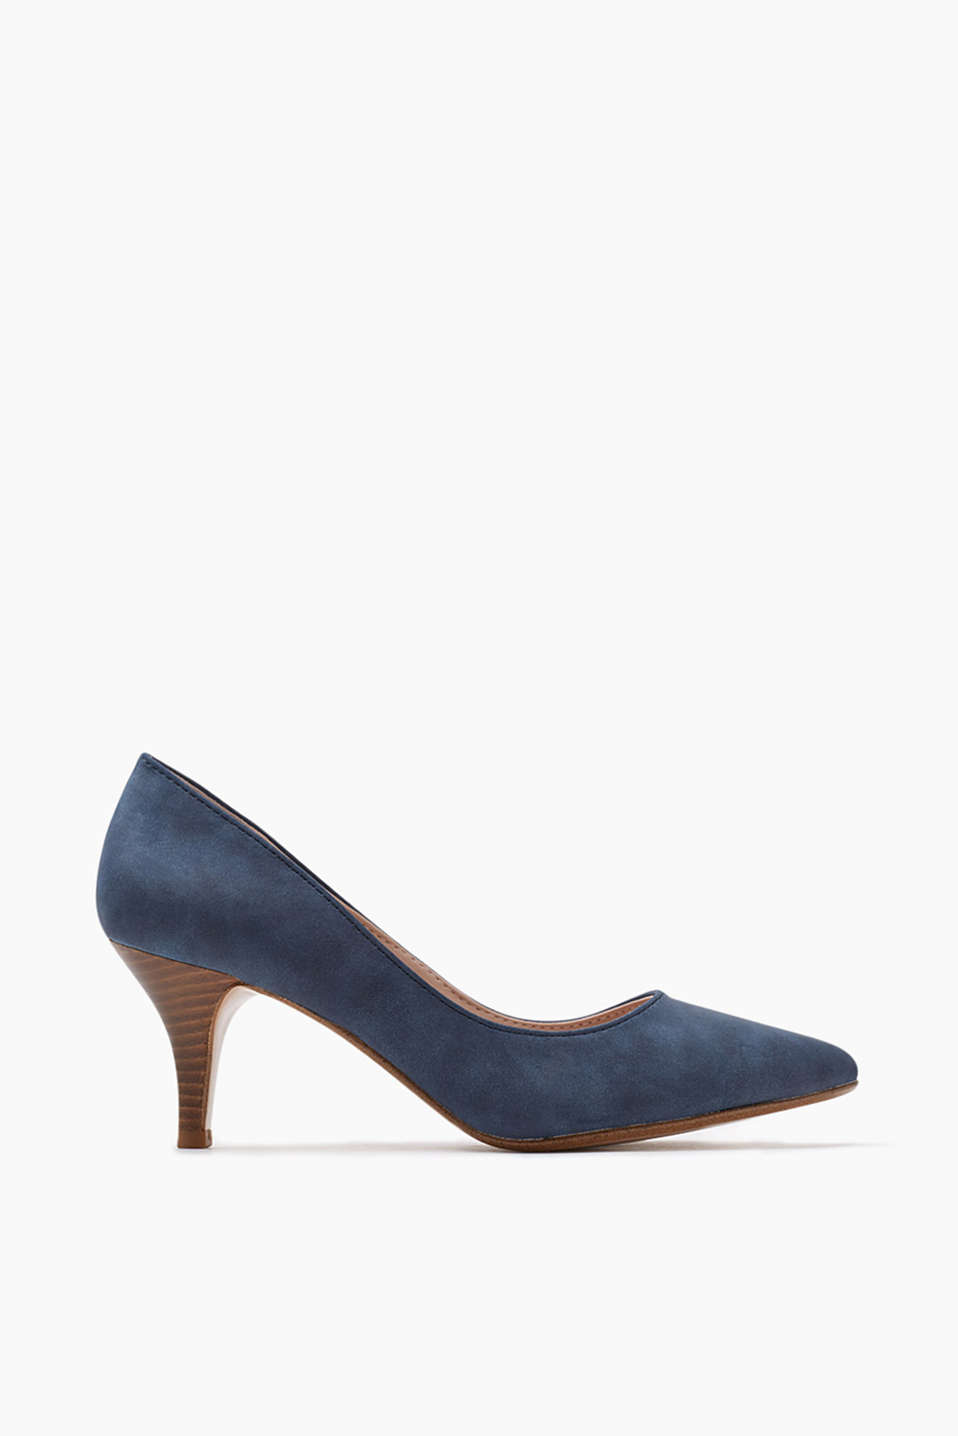 with a funnel-shaped stacked heel (approx. 7 cm)